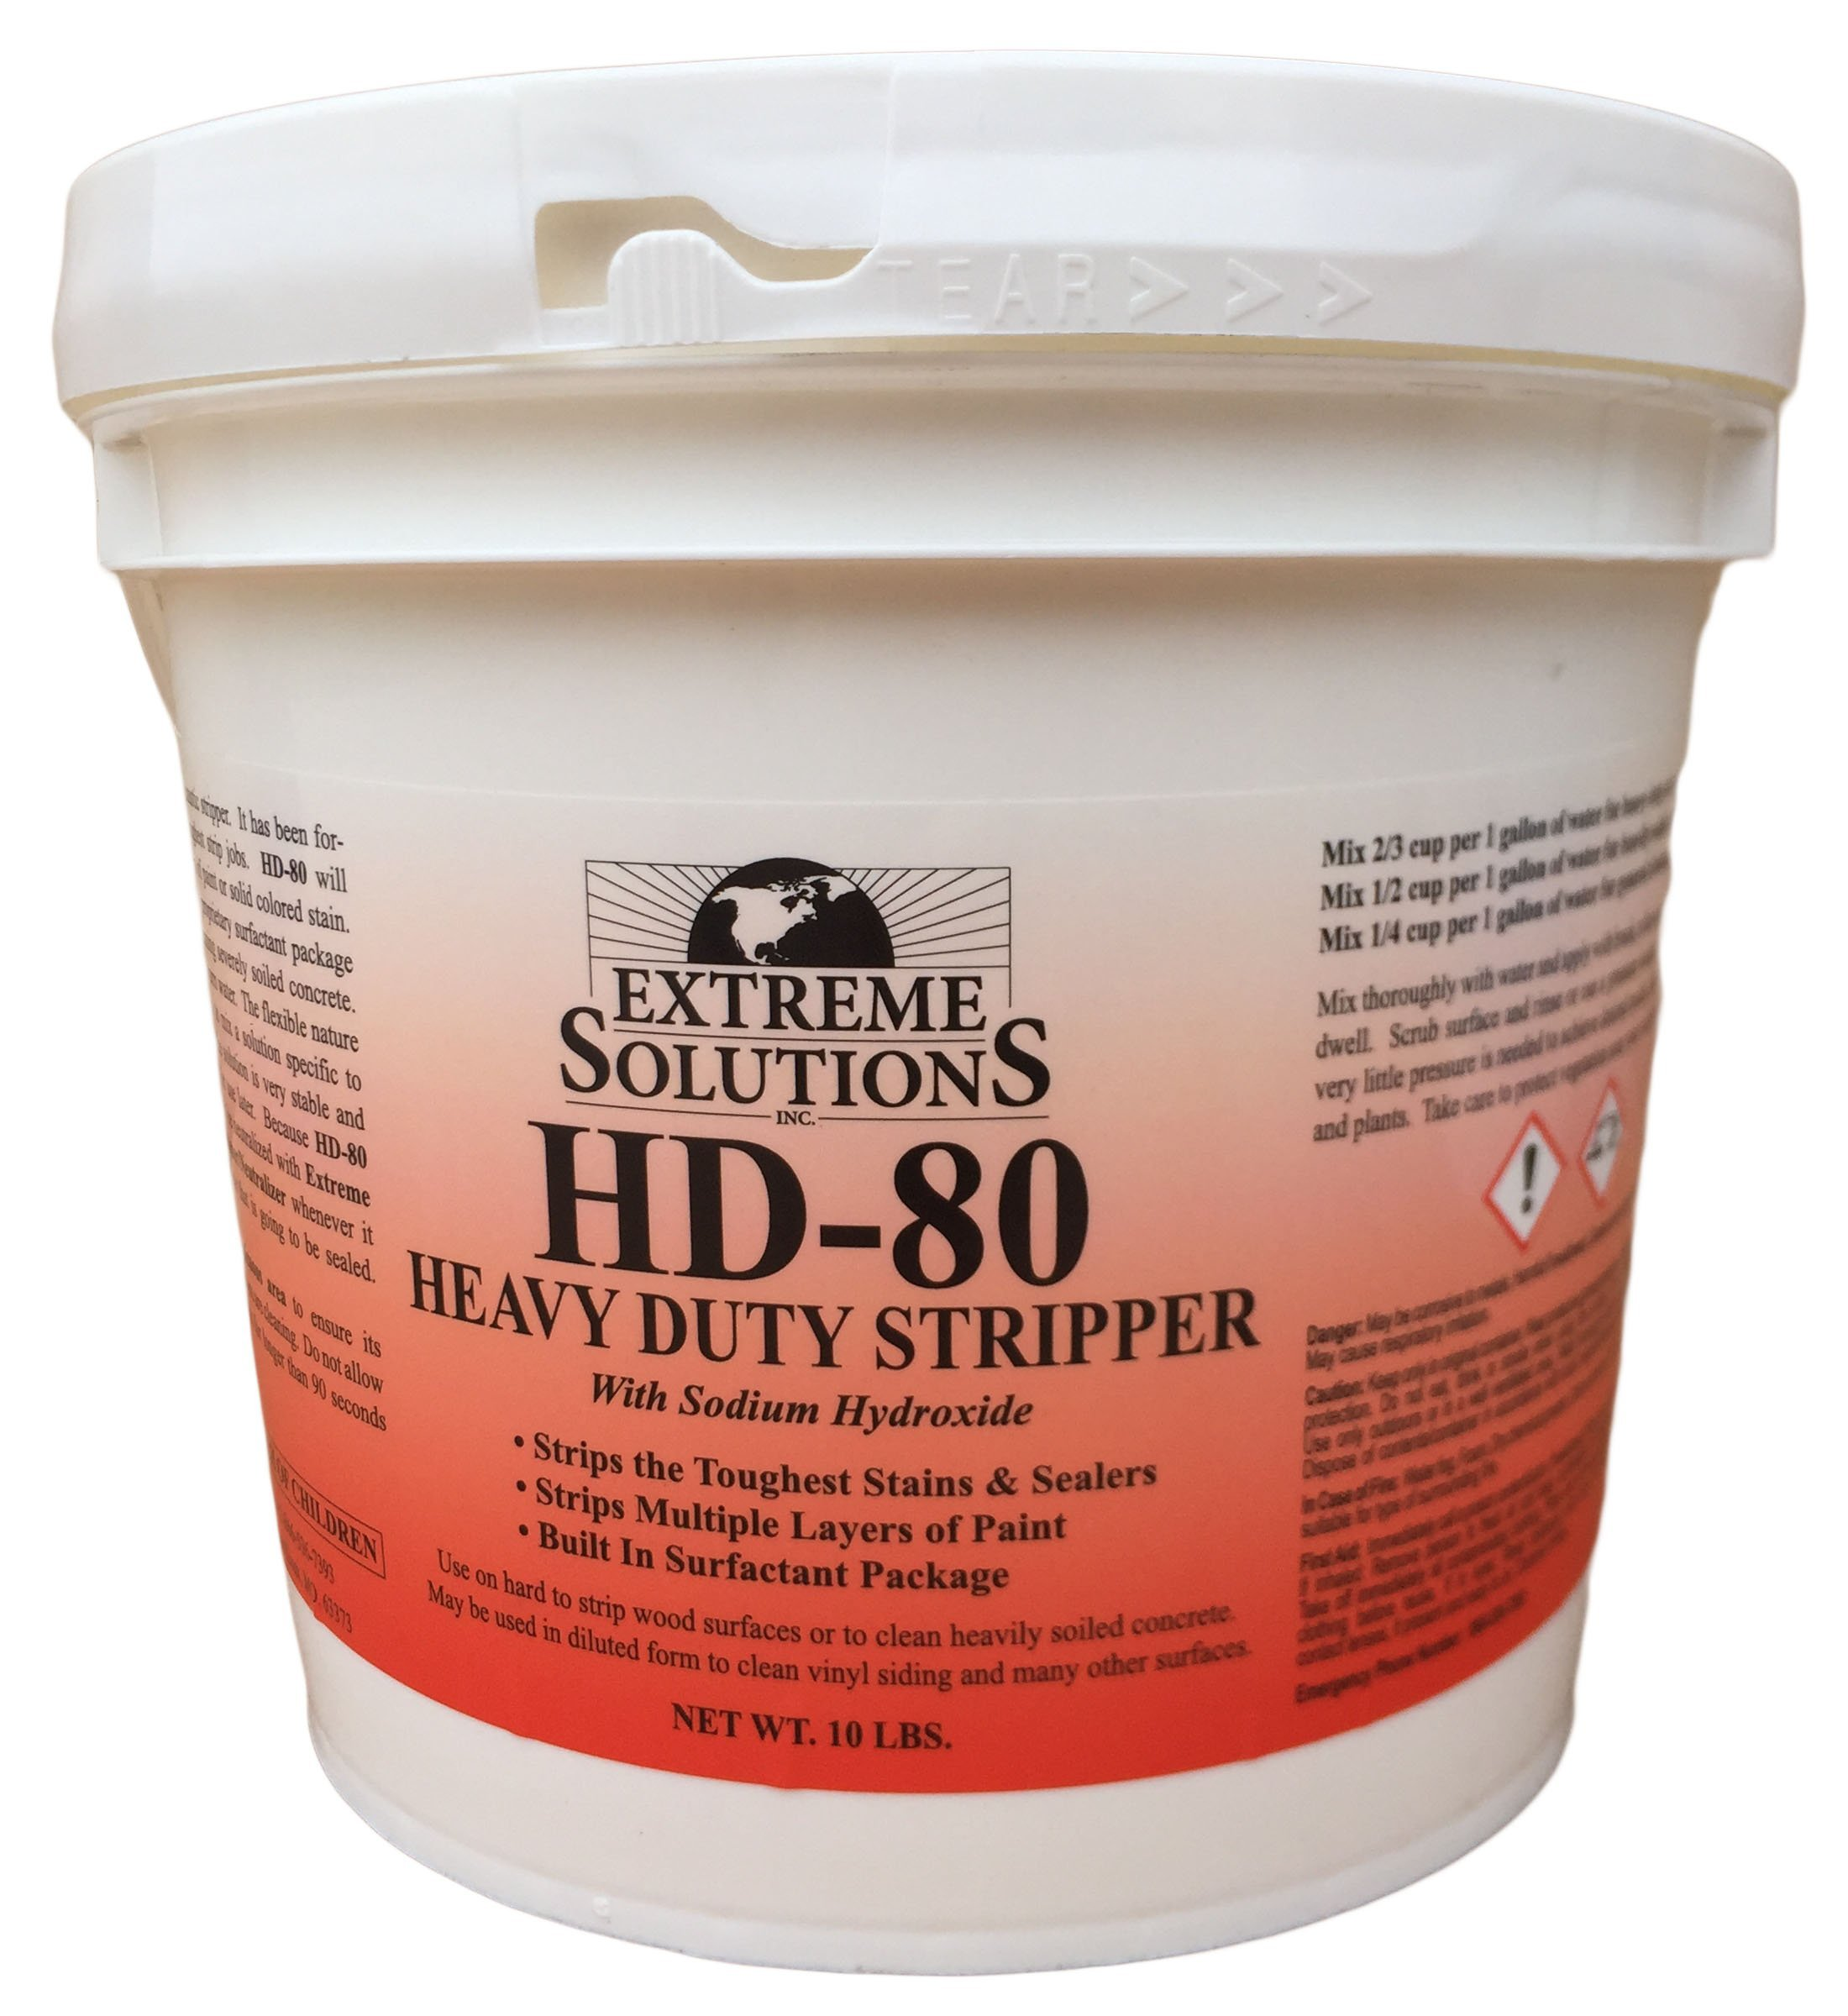 Heavy Duty Wood Stripper & Wood Cleaner for Wood Decks, Wood Fences, Wood Siding, and Log Cabins - HD80 - Woodrich Brand - Sealer & Stain Remover - Covers up to 3000 Square Feet by Woodrich Brand